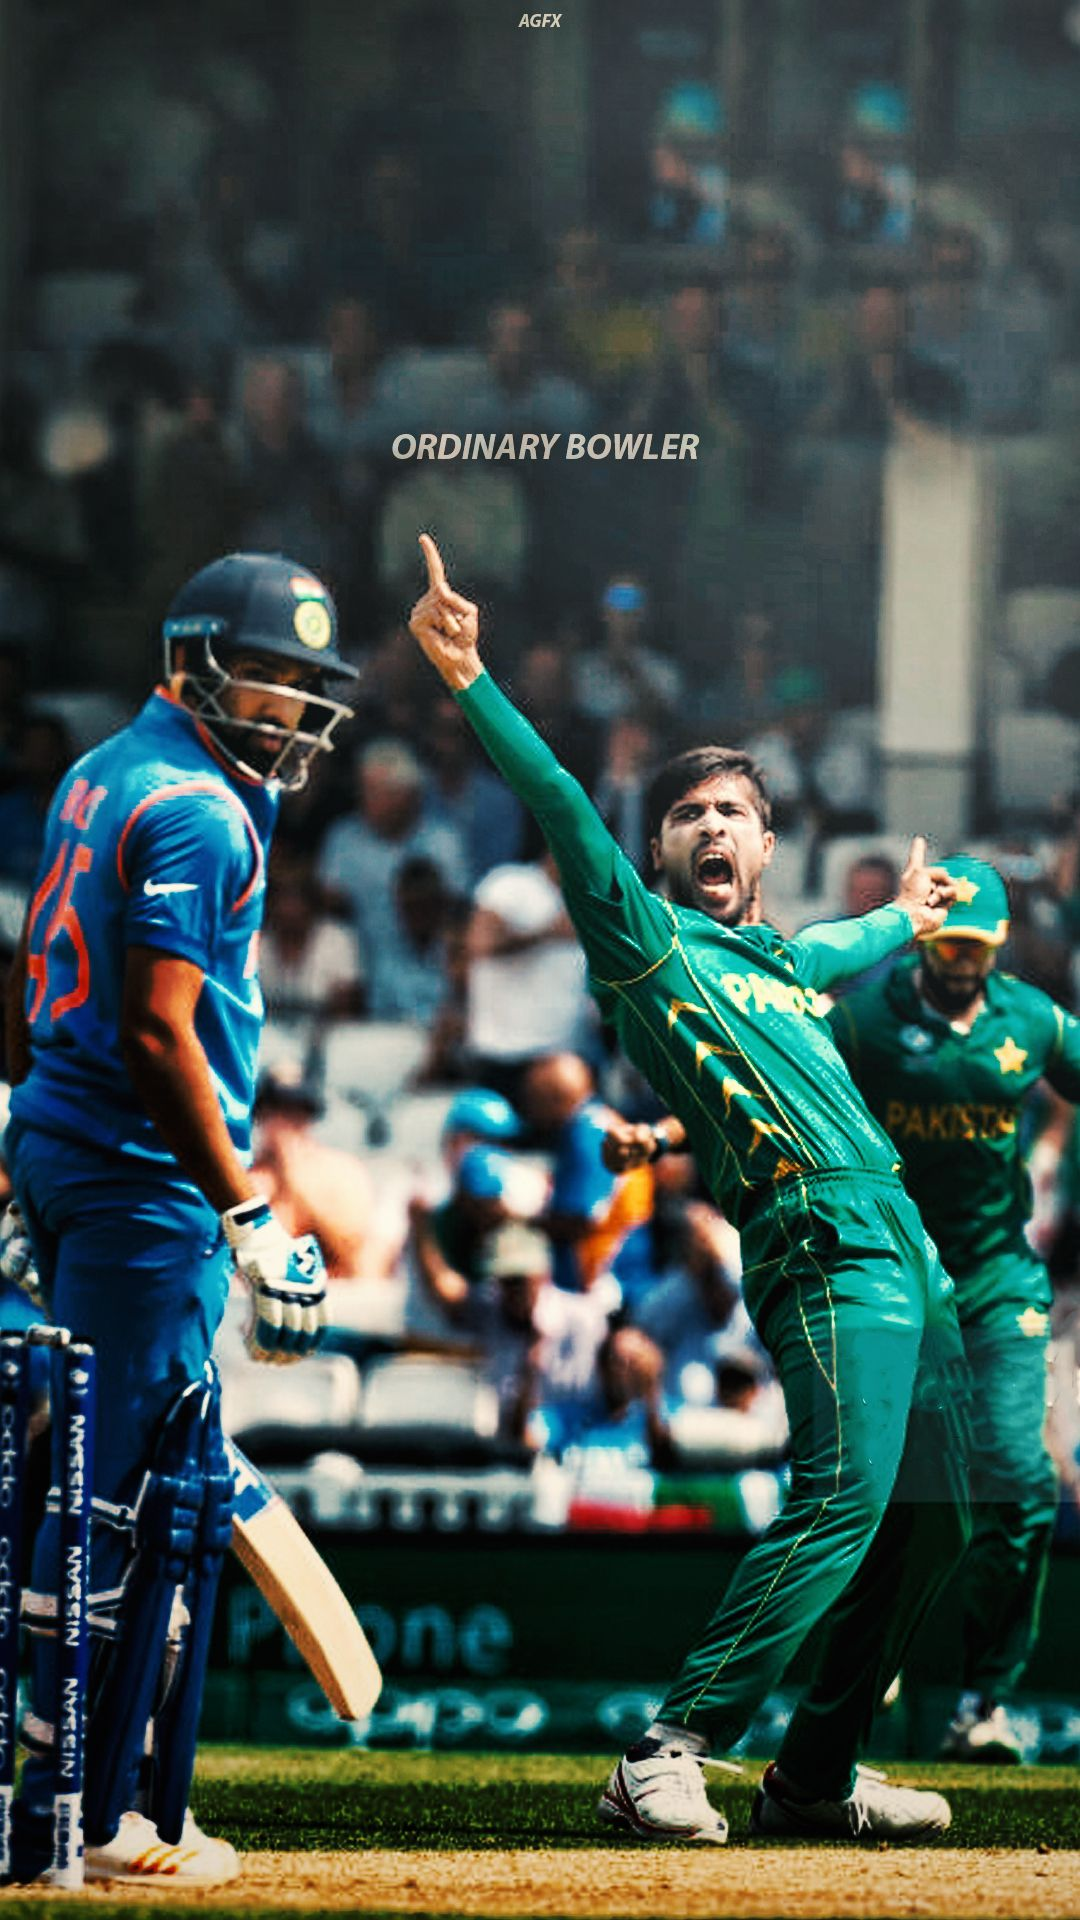 Cricket | Mohammad Amir | PSL - Wallpaper #PSL #Wallpaper